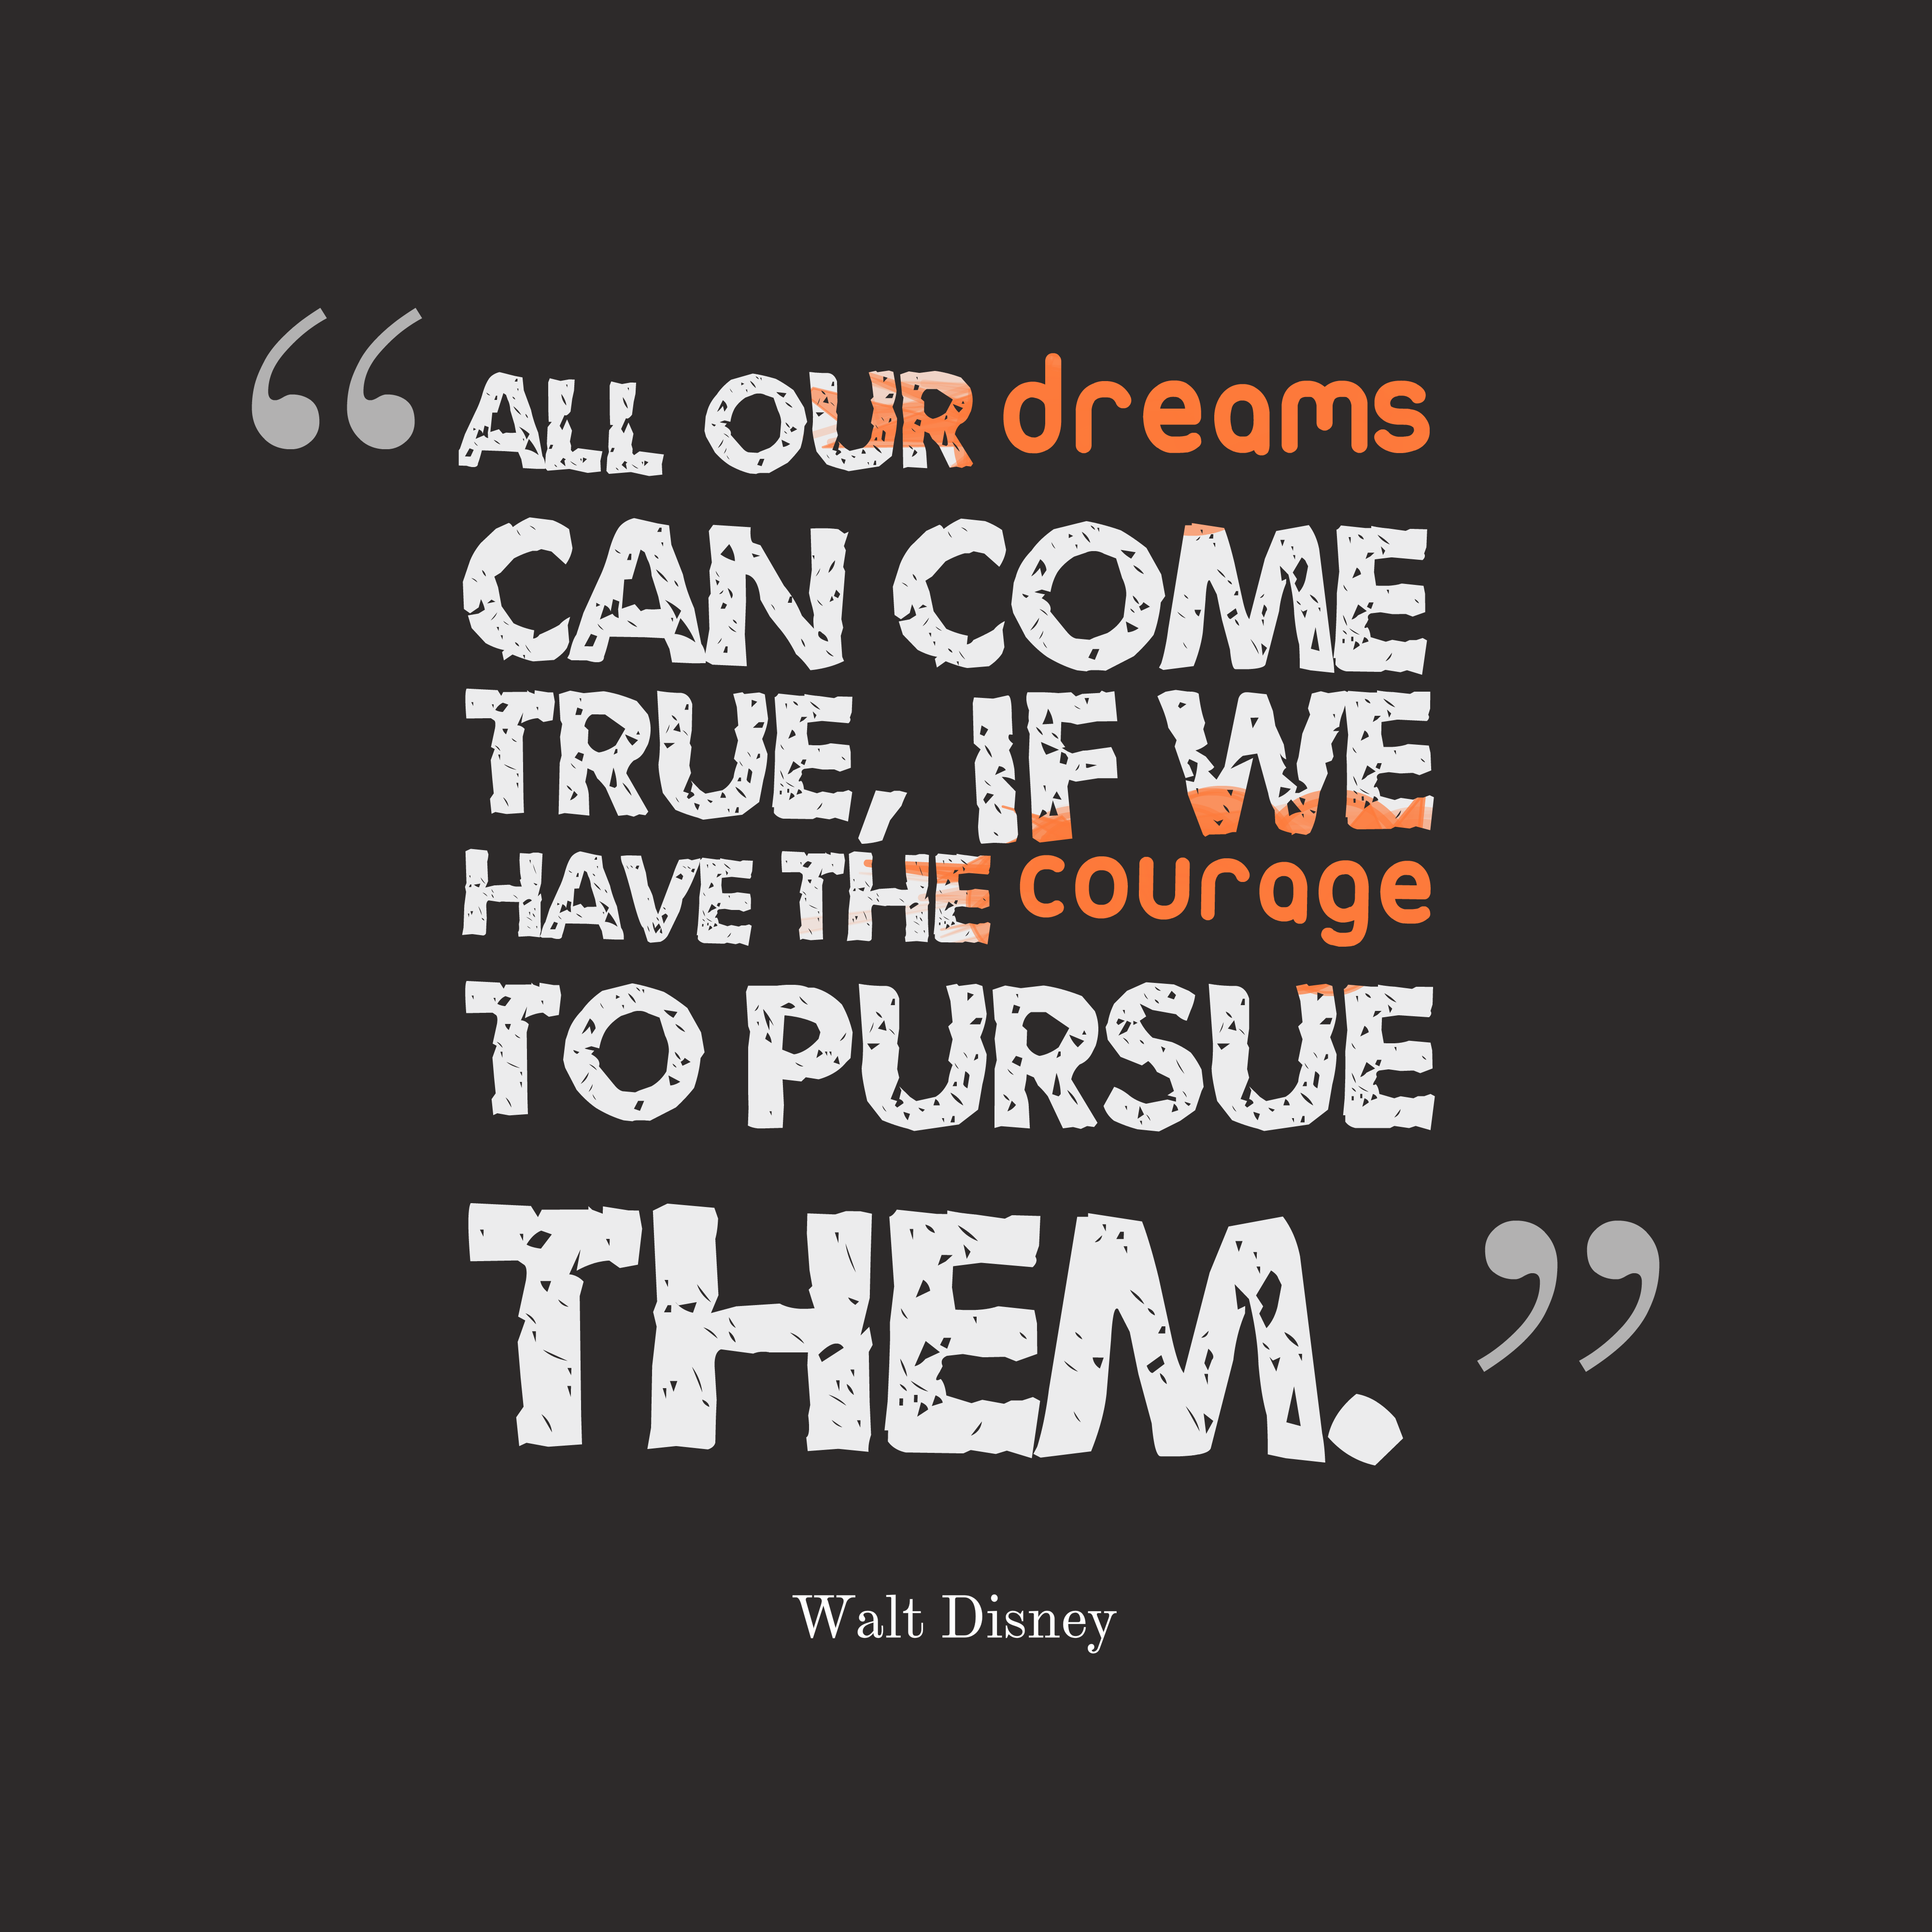 Walt Disney Quote Picture Walt Disney Quote About Dreams Quotescover